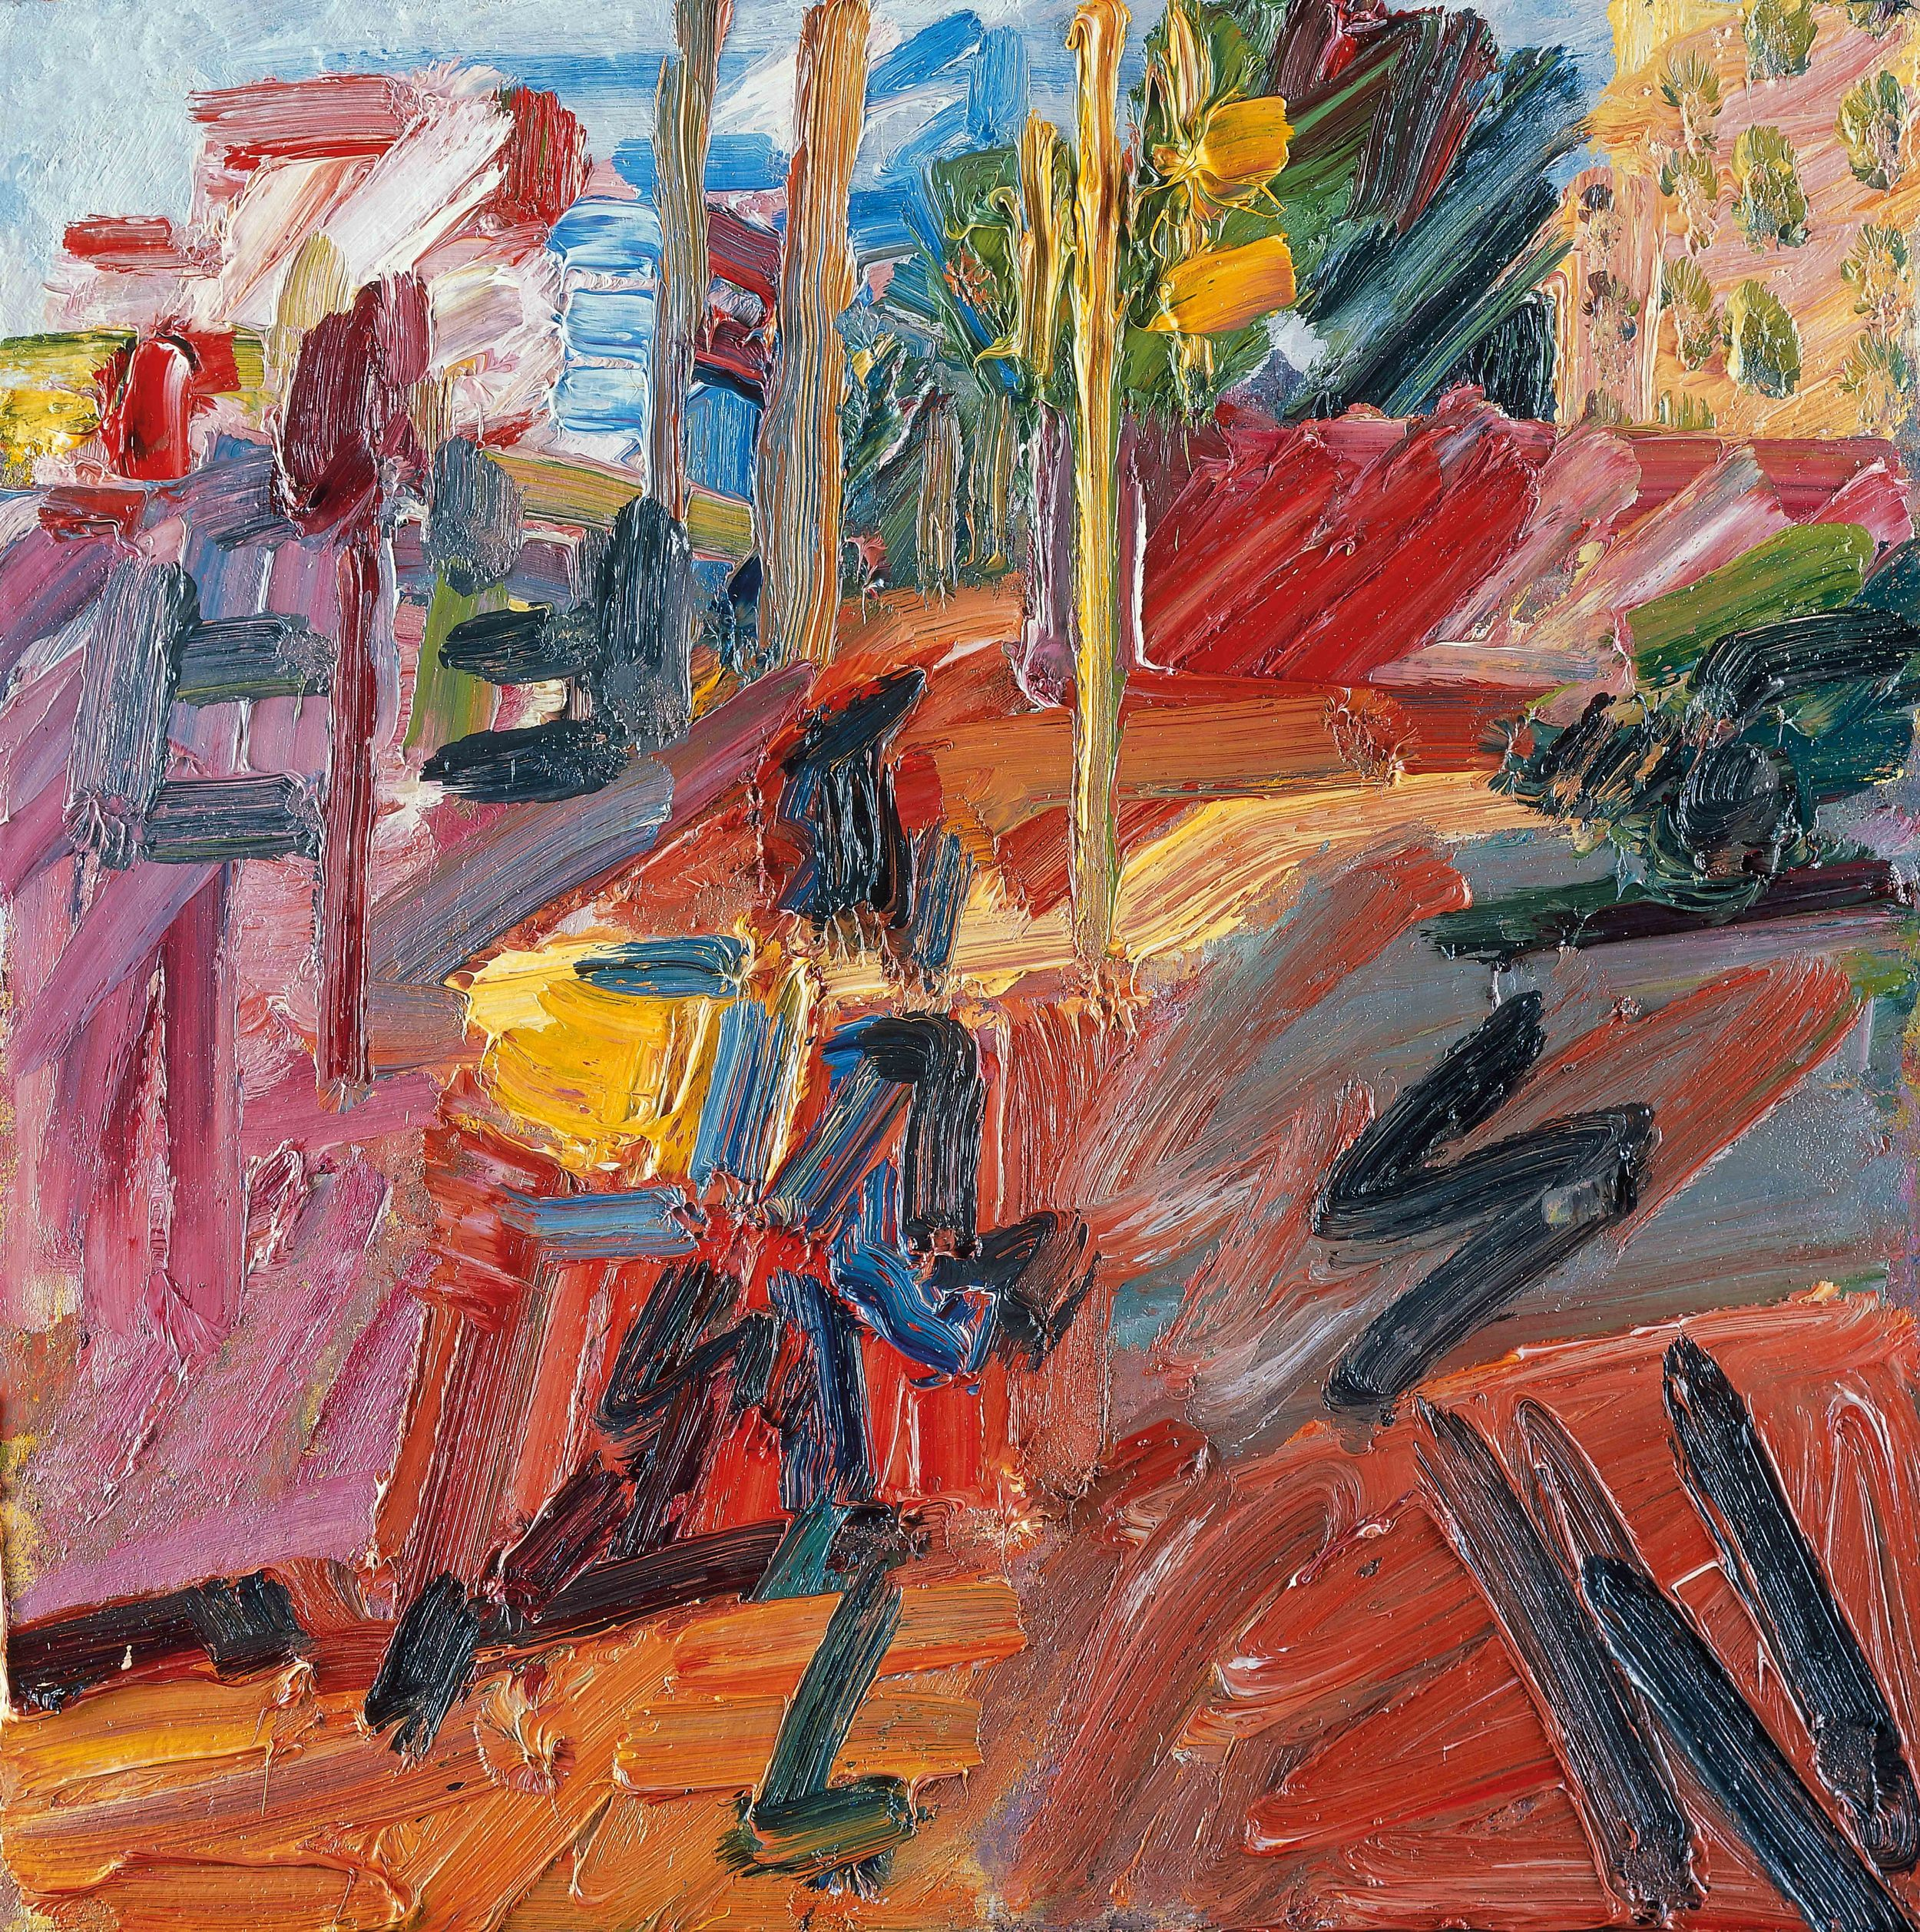 Frank Auerbach (b 1931)   Hampstead Road, High Summer  2010, Painting, Oil paint on board, 562 x 562 mm  Private collection, © Frank Auerbach, courtesy Marlborough Fine Art